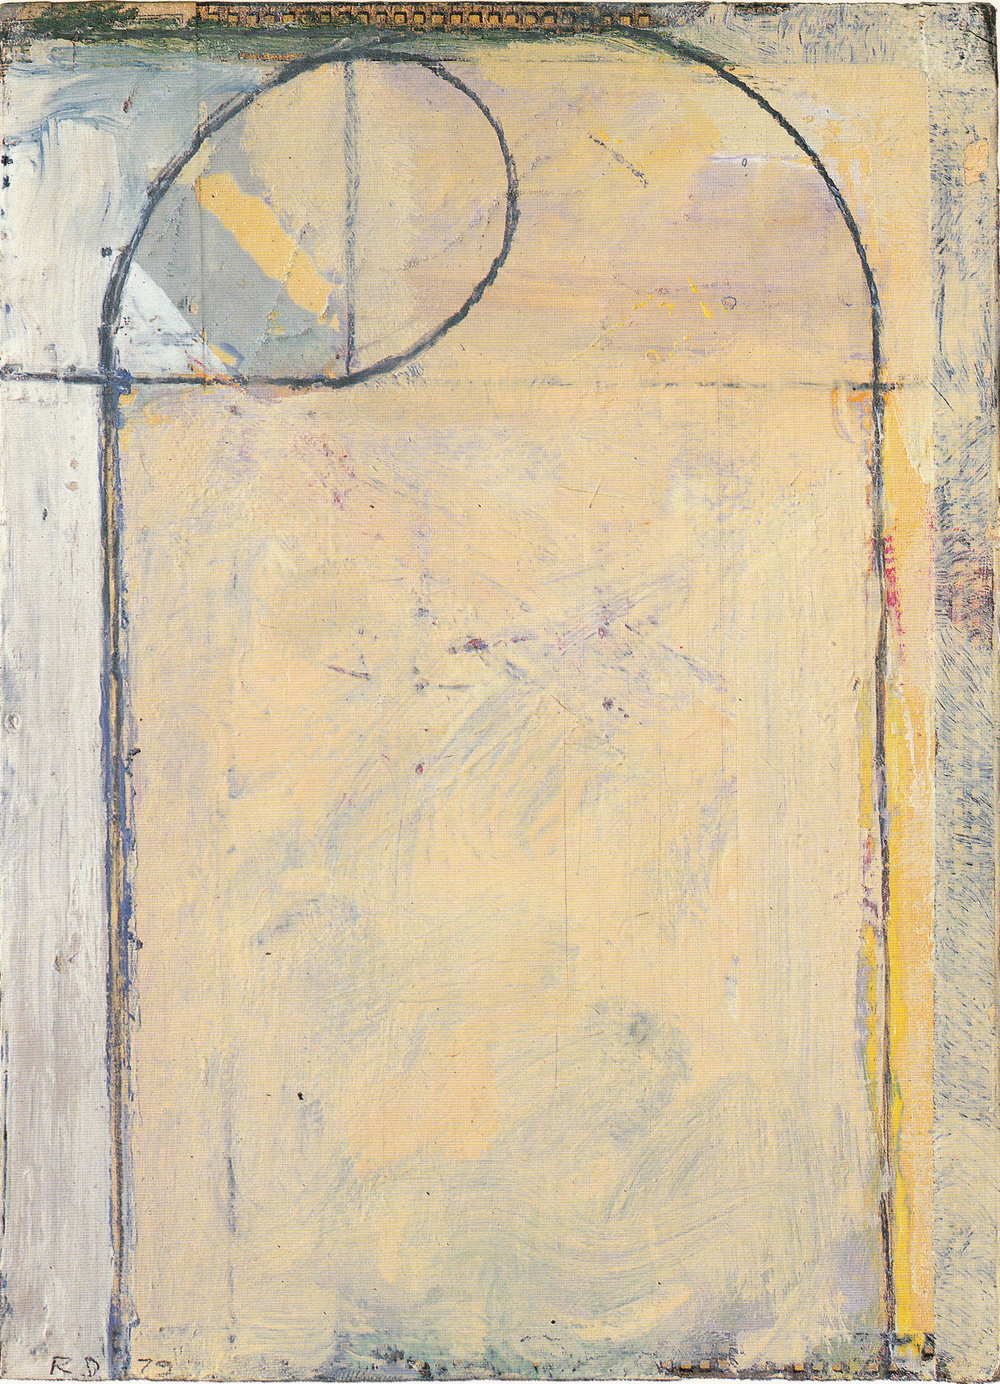 Richard Diebenkorn, Cigar Box Lid #6, oil on wood, 1979